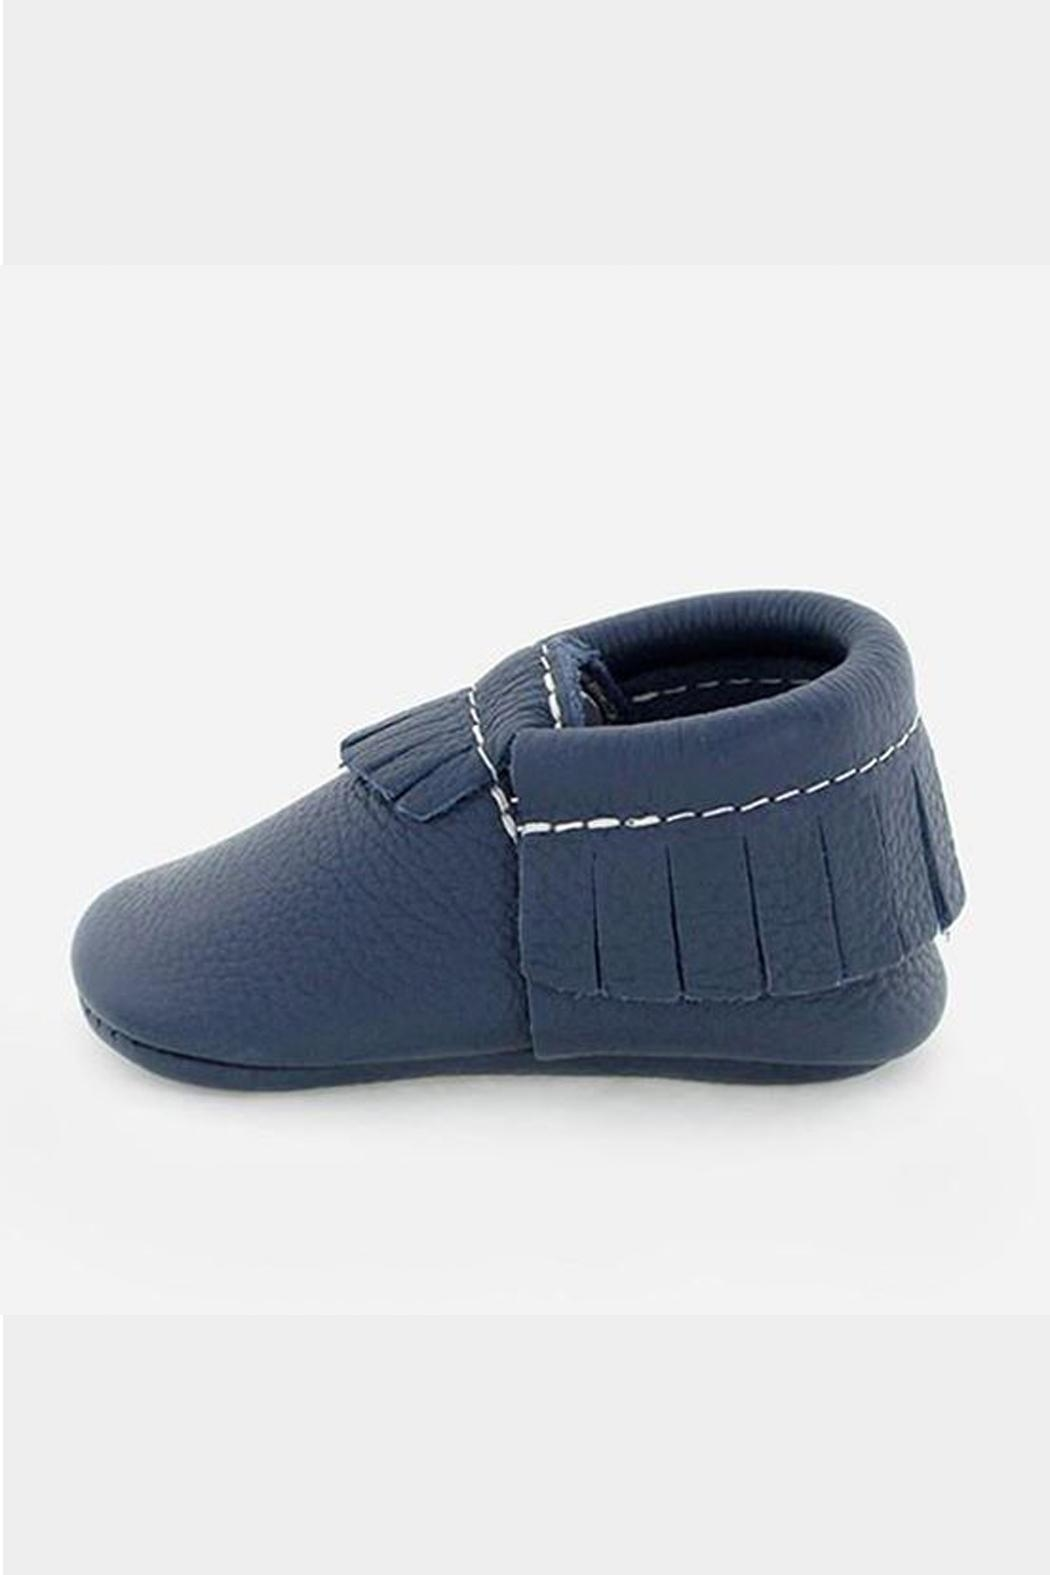 Freshly Picked Navy Moccasin - Front Full Image